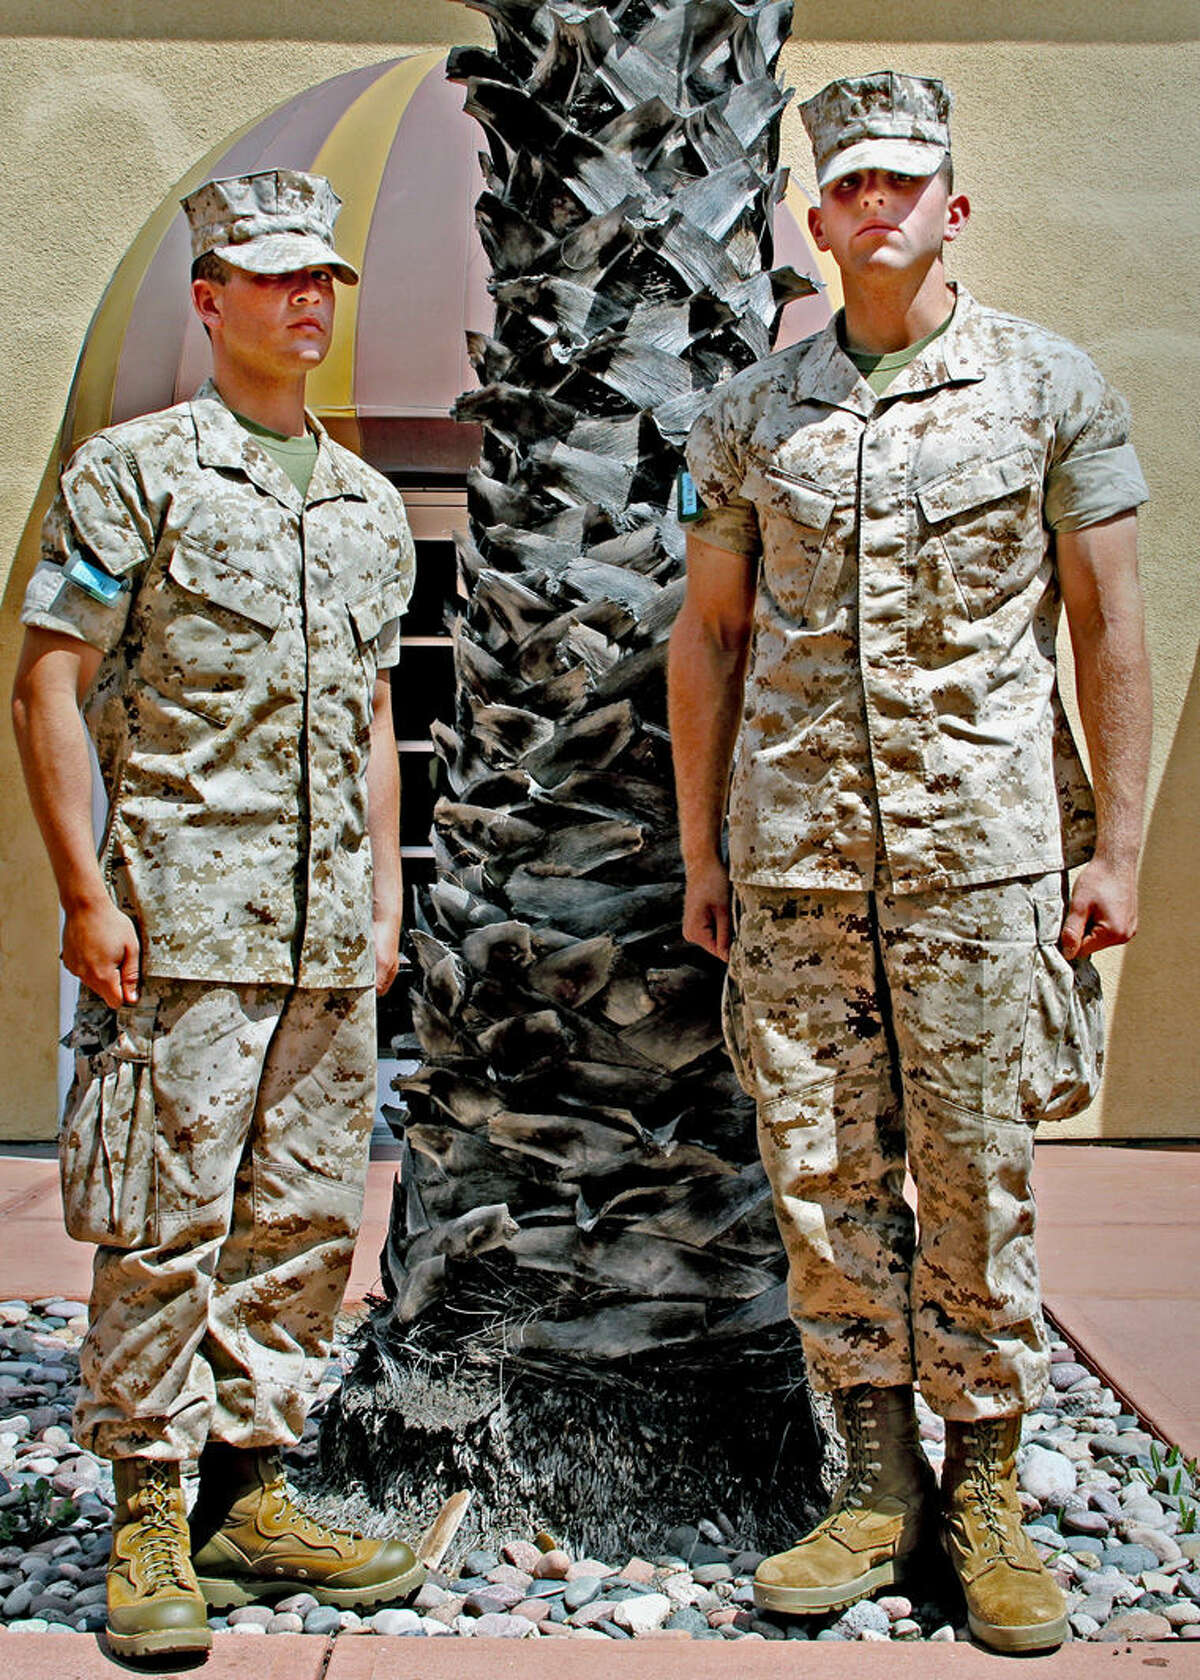 Marine recruit Alan Peck Jr., of Freeland, left, stands with fellow recruit Russell Brown of Bay City.